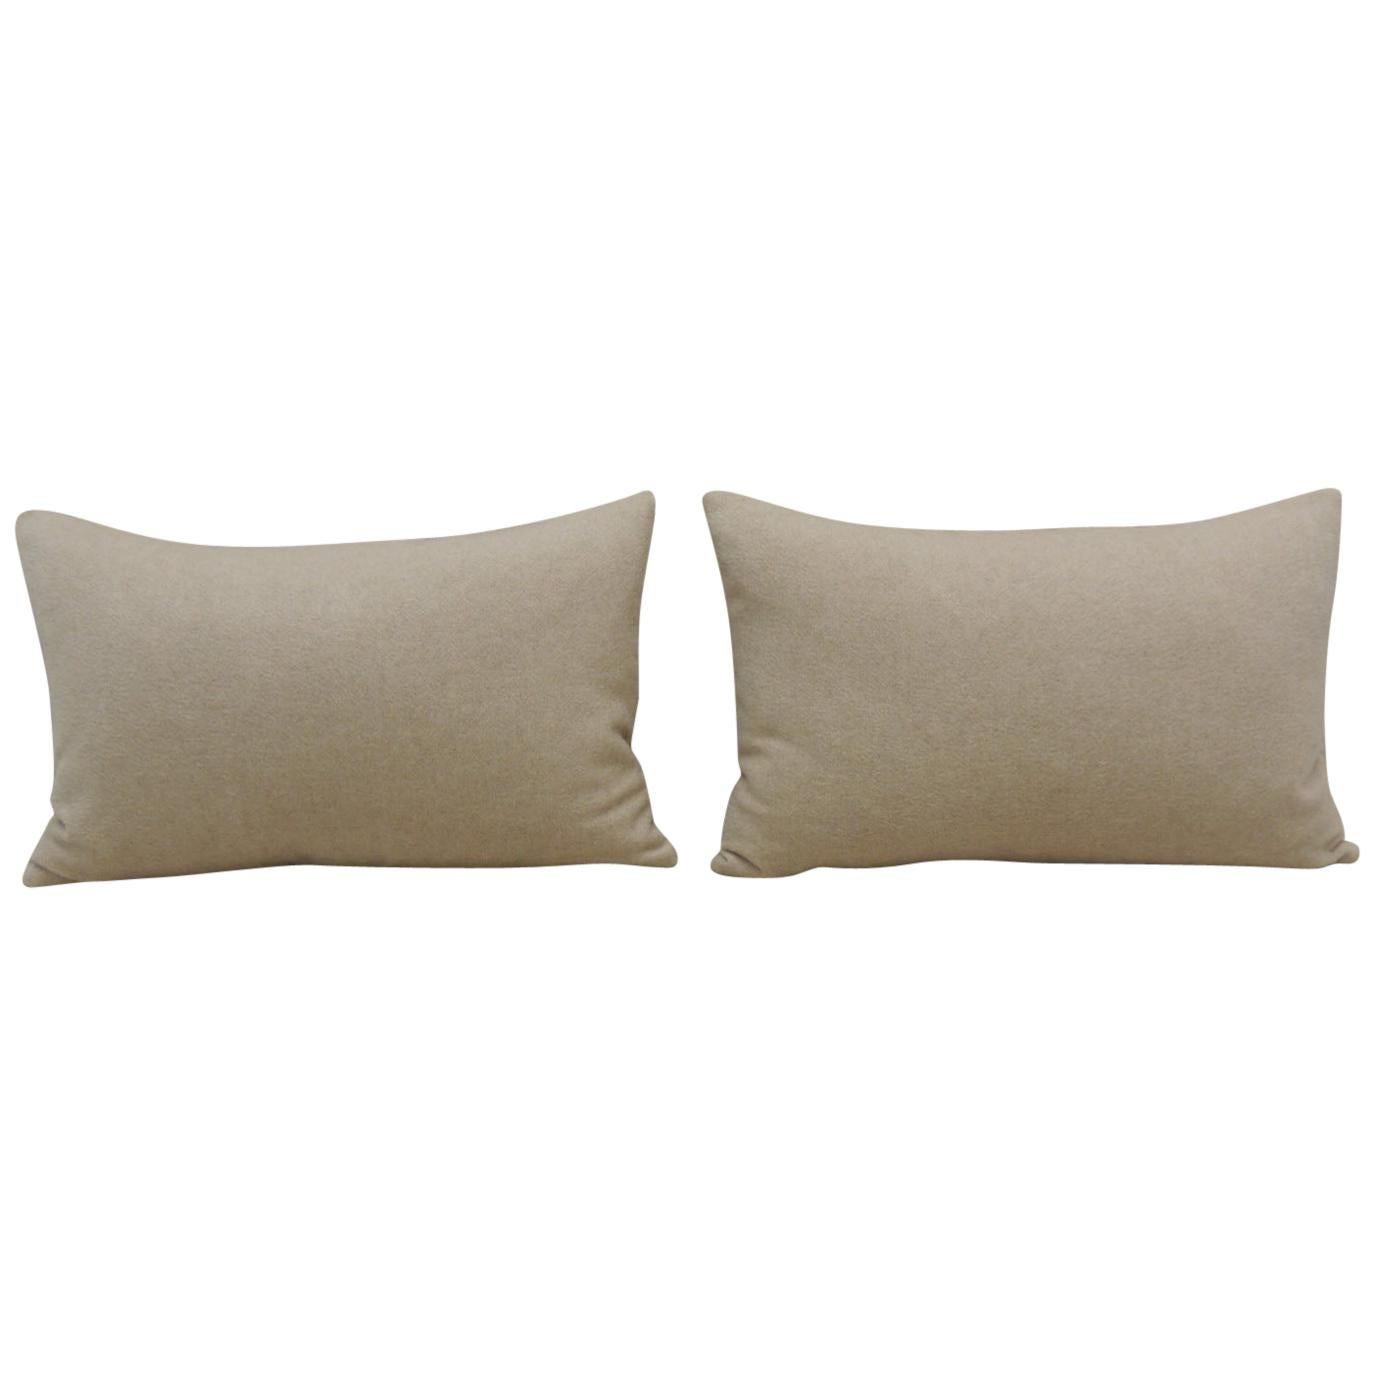 Pair of Beige Tone-on-Tone Loro Piana Cashmere Decorative Lumbar Pillows